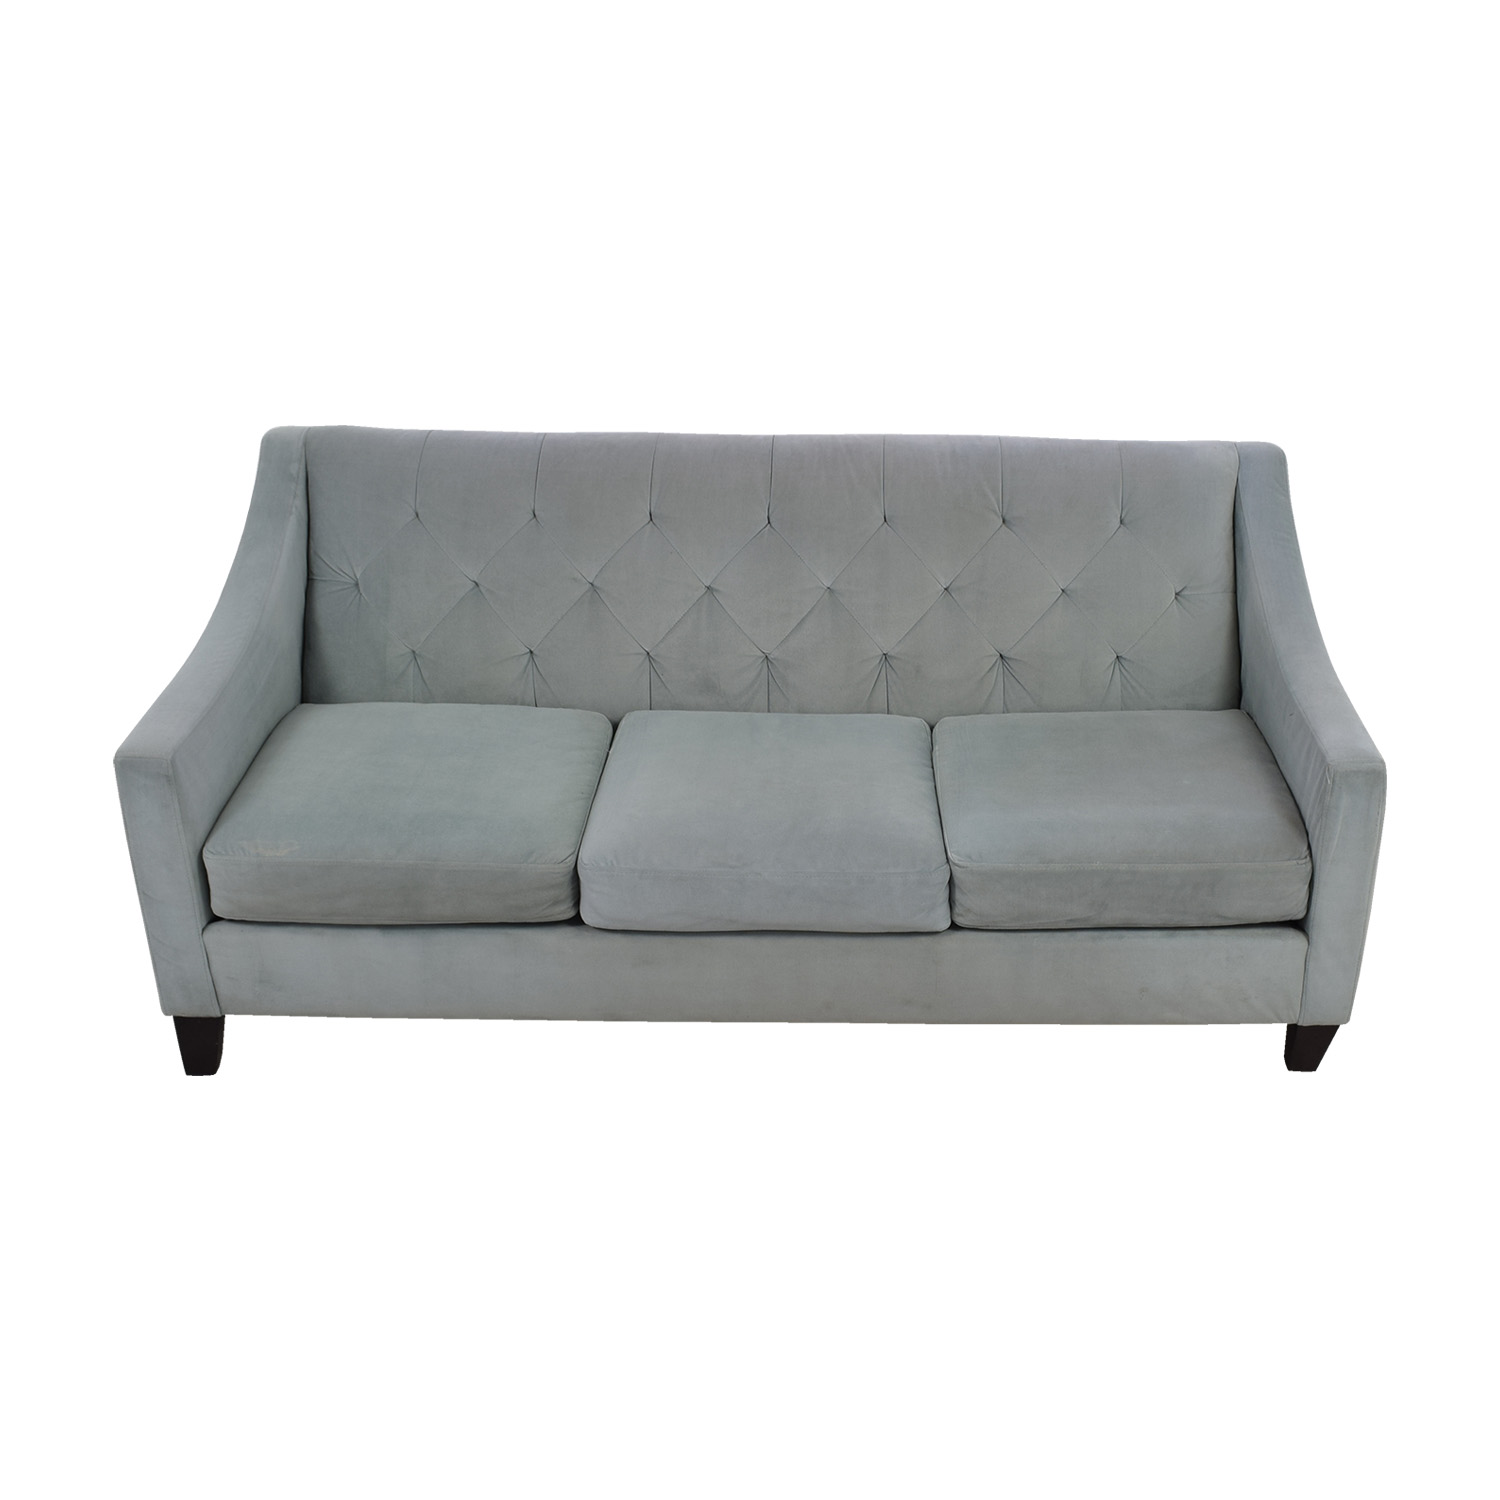 shop Max Studio Max Studio Light Blue Tufted Three Cushion Velvet Couch online